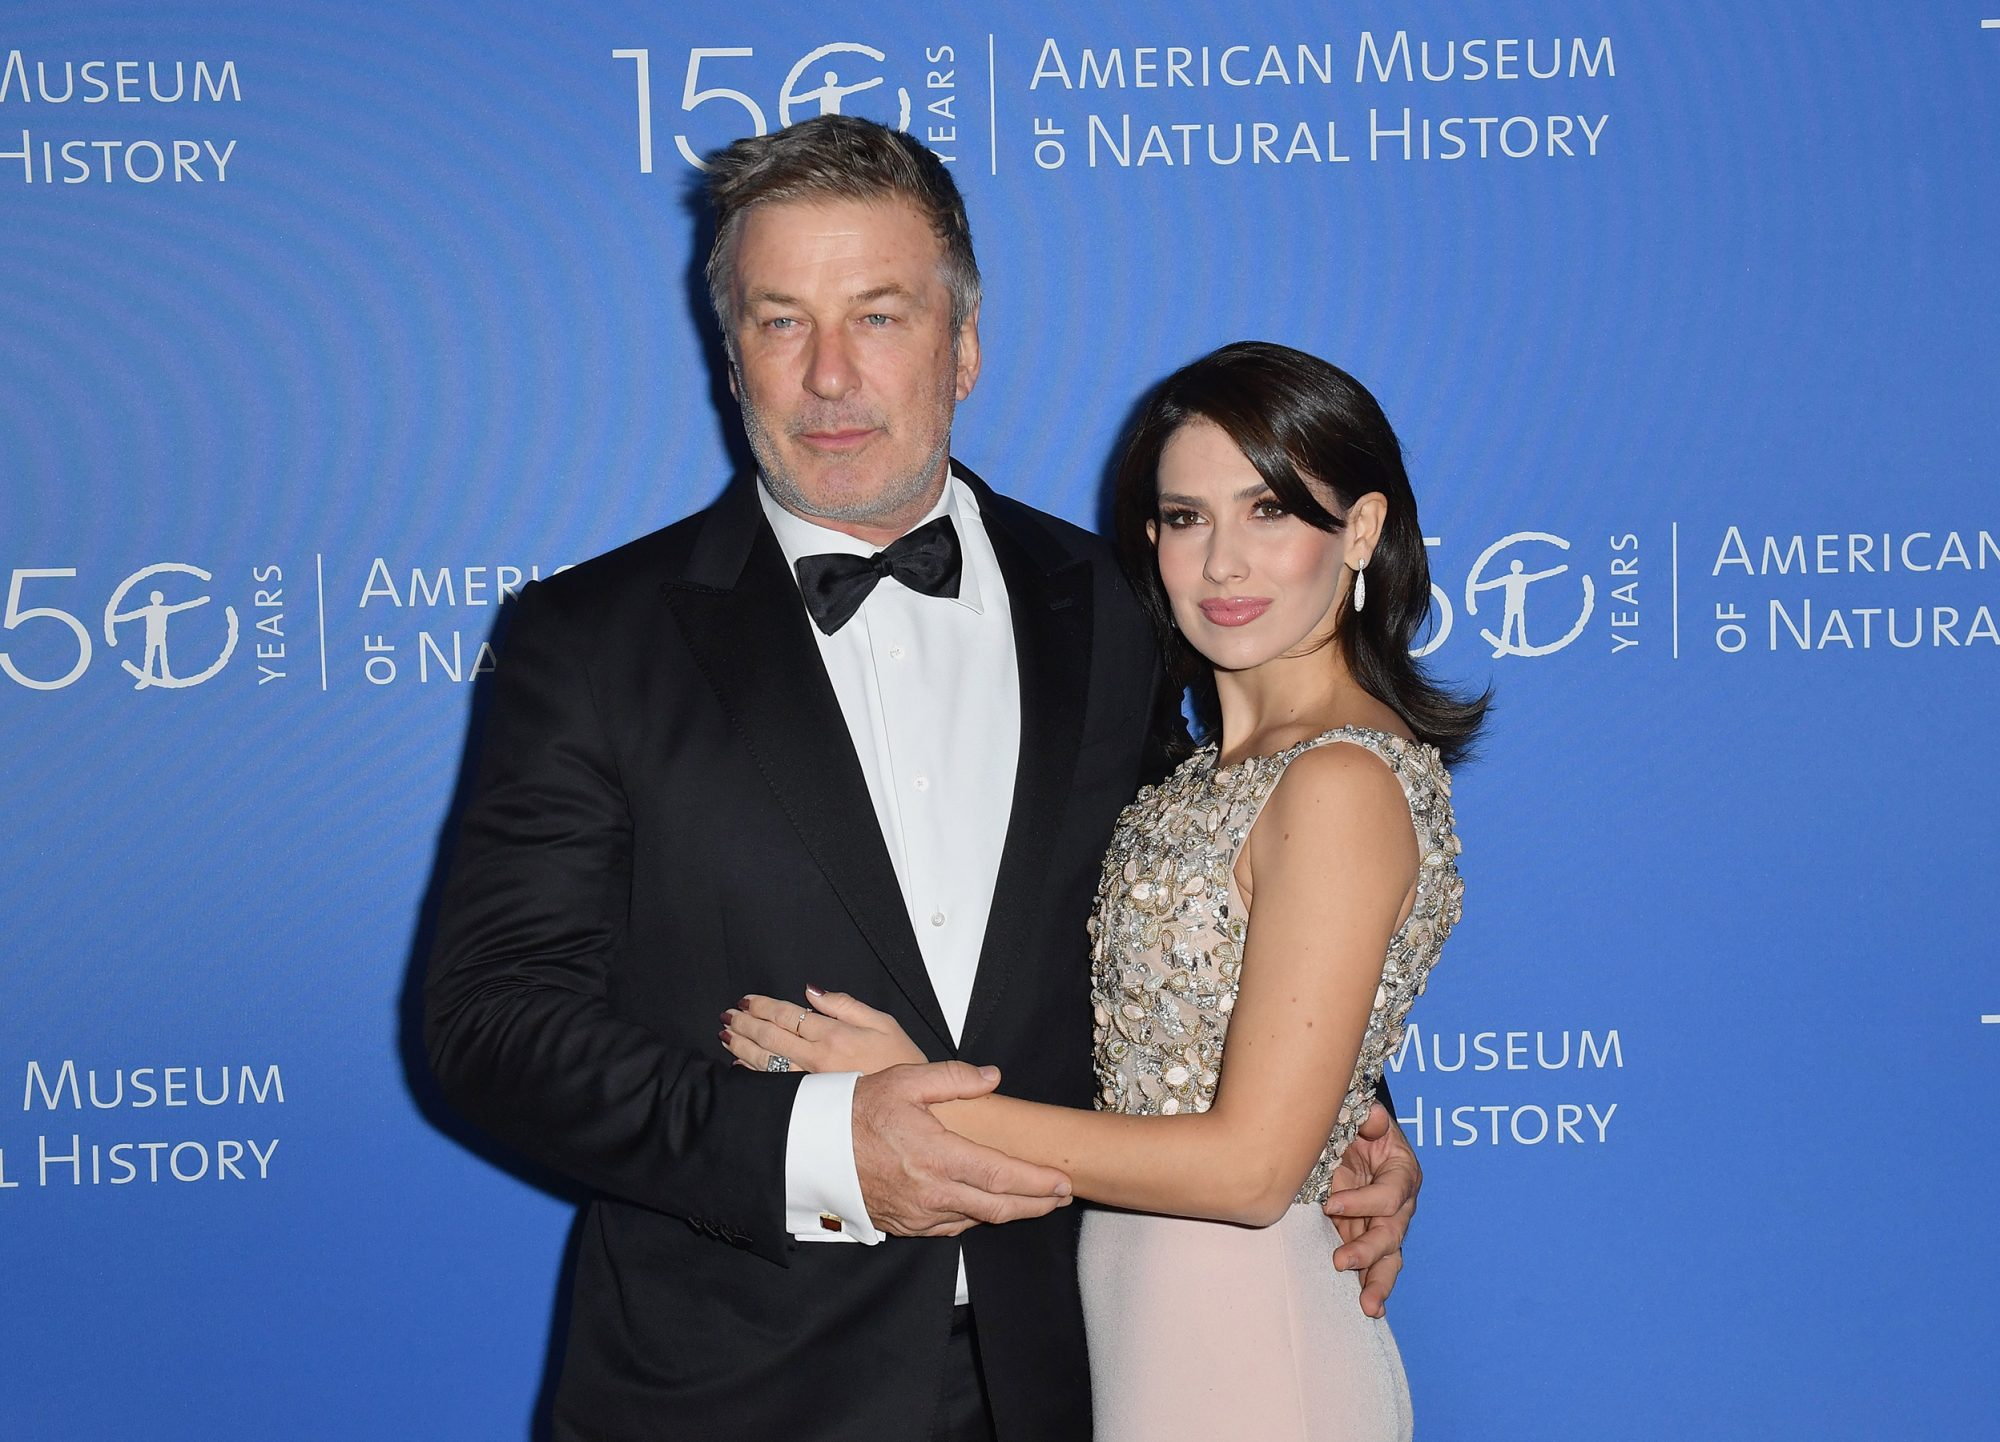 hilaria-baldwin-attempts-to-clear-up-her-decade-long-claim-that-she-is-from-spain-when-she-is-really-from-boston